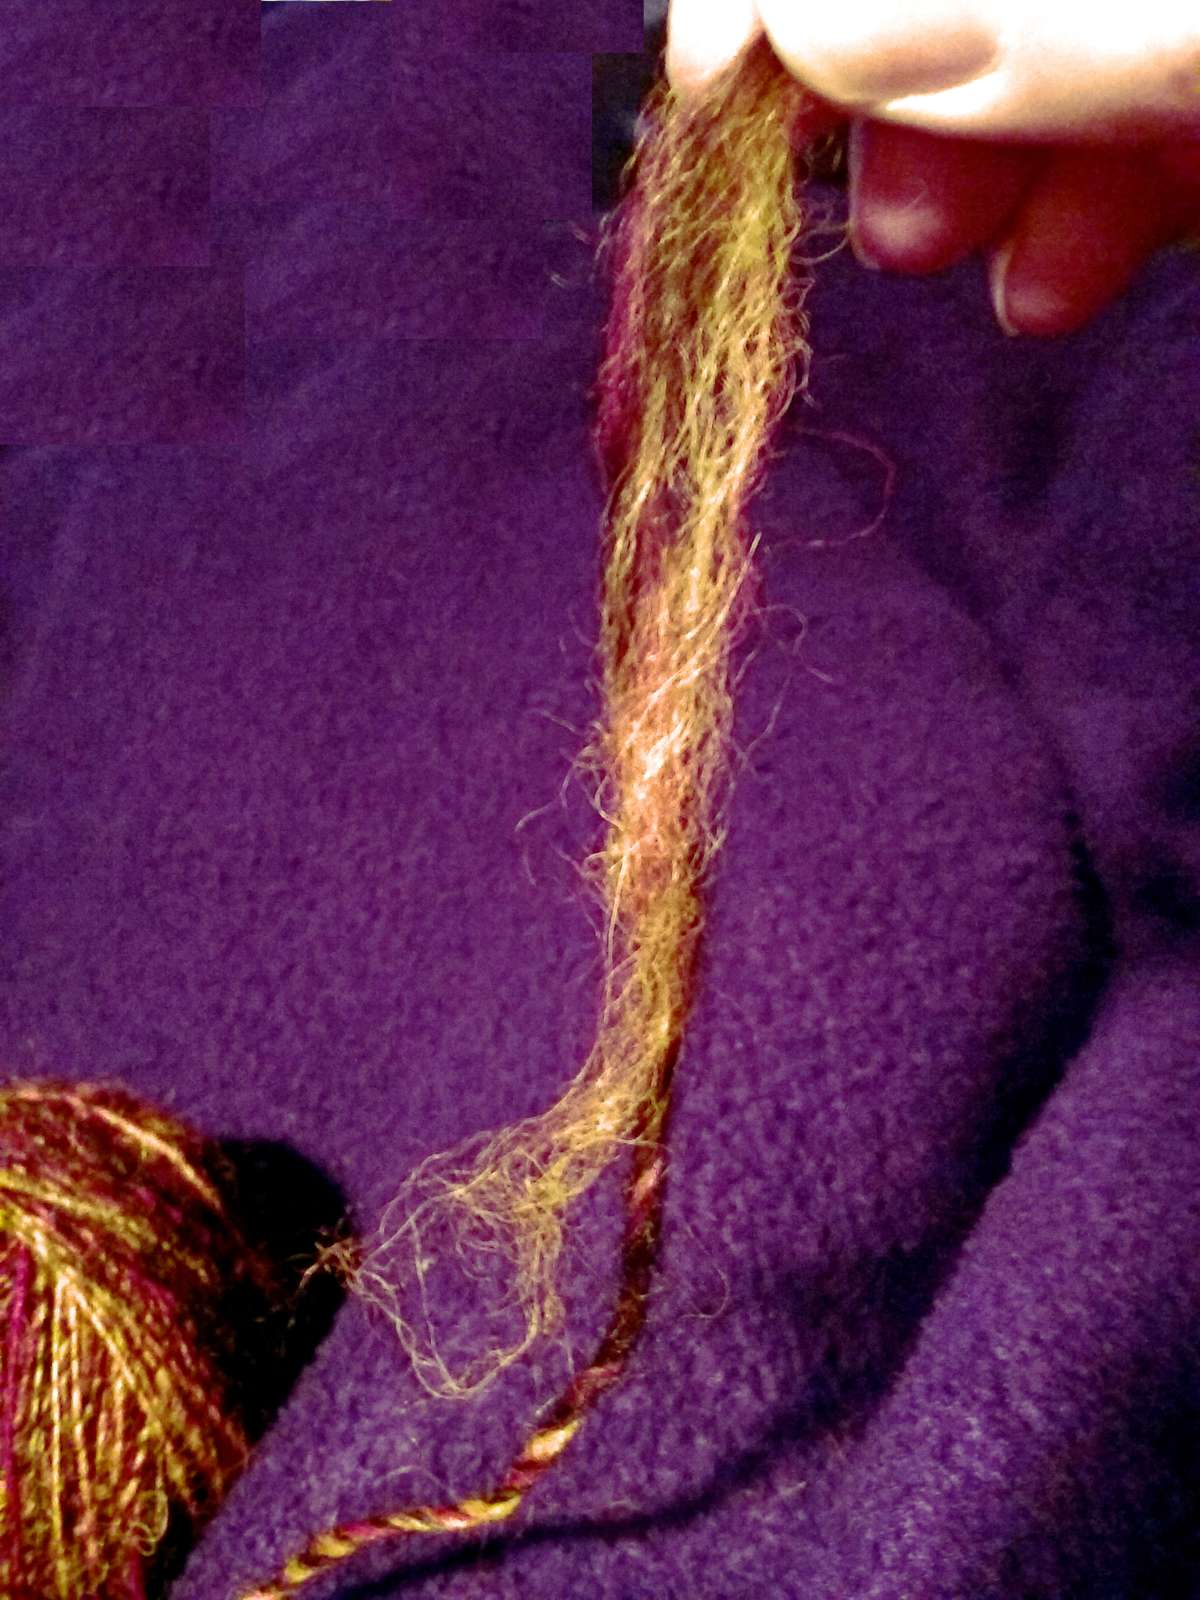 Close up of the join between the spindle and the plying ball, in this hand spun single yarn that drifted apart.